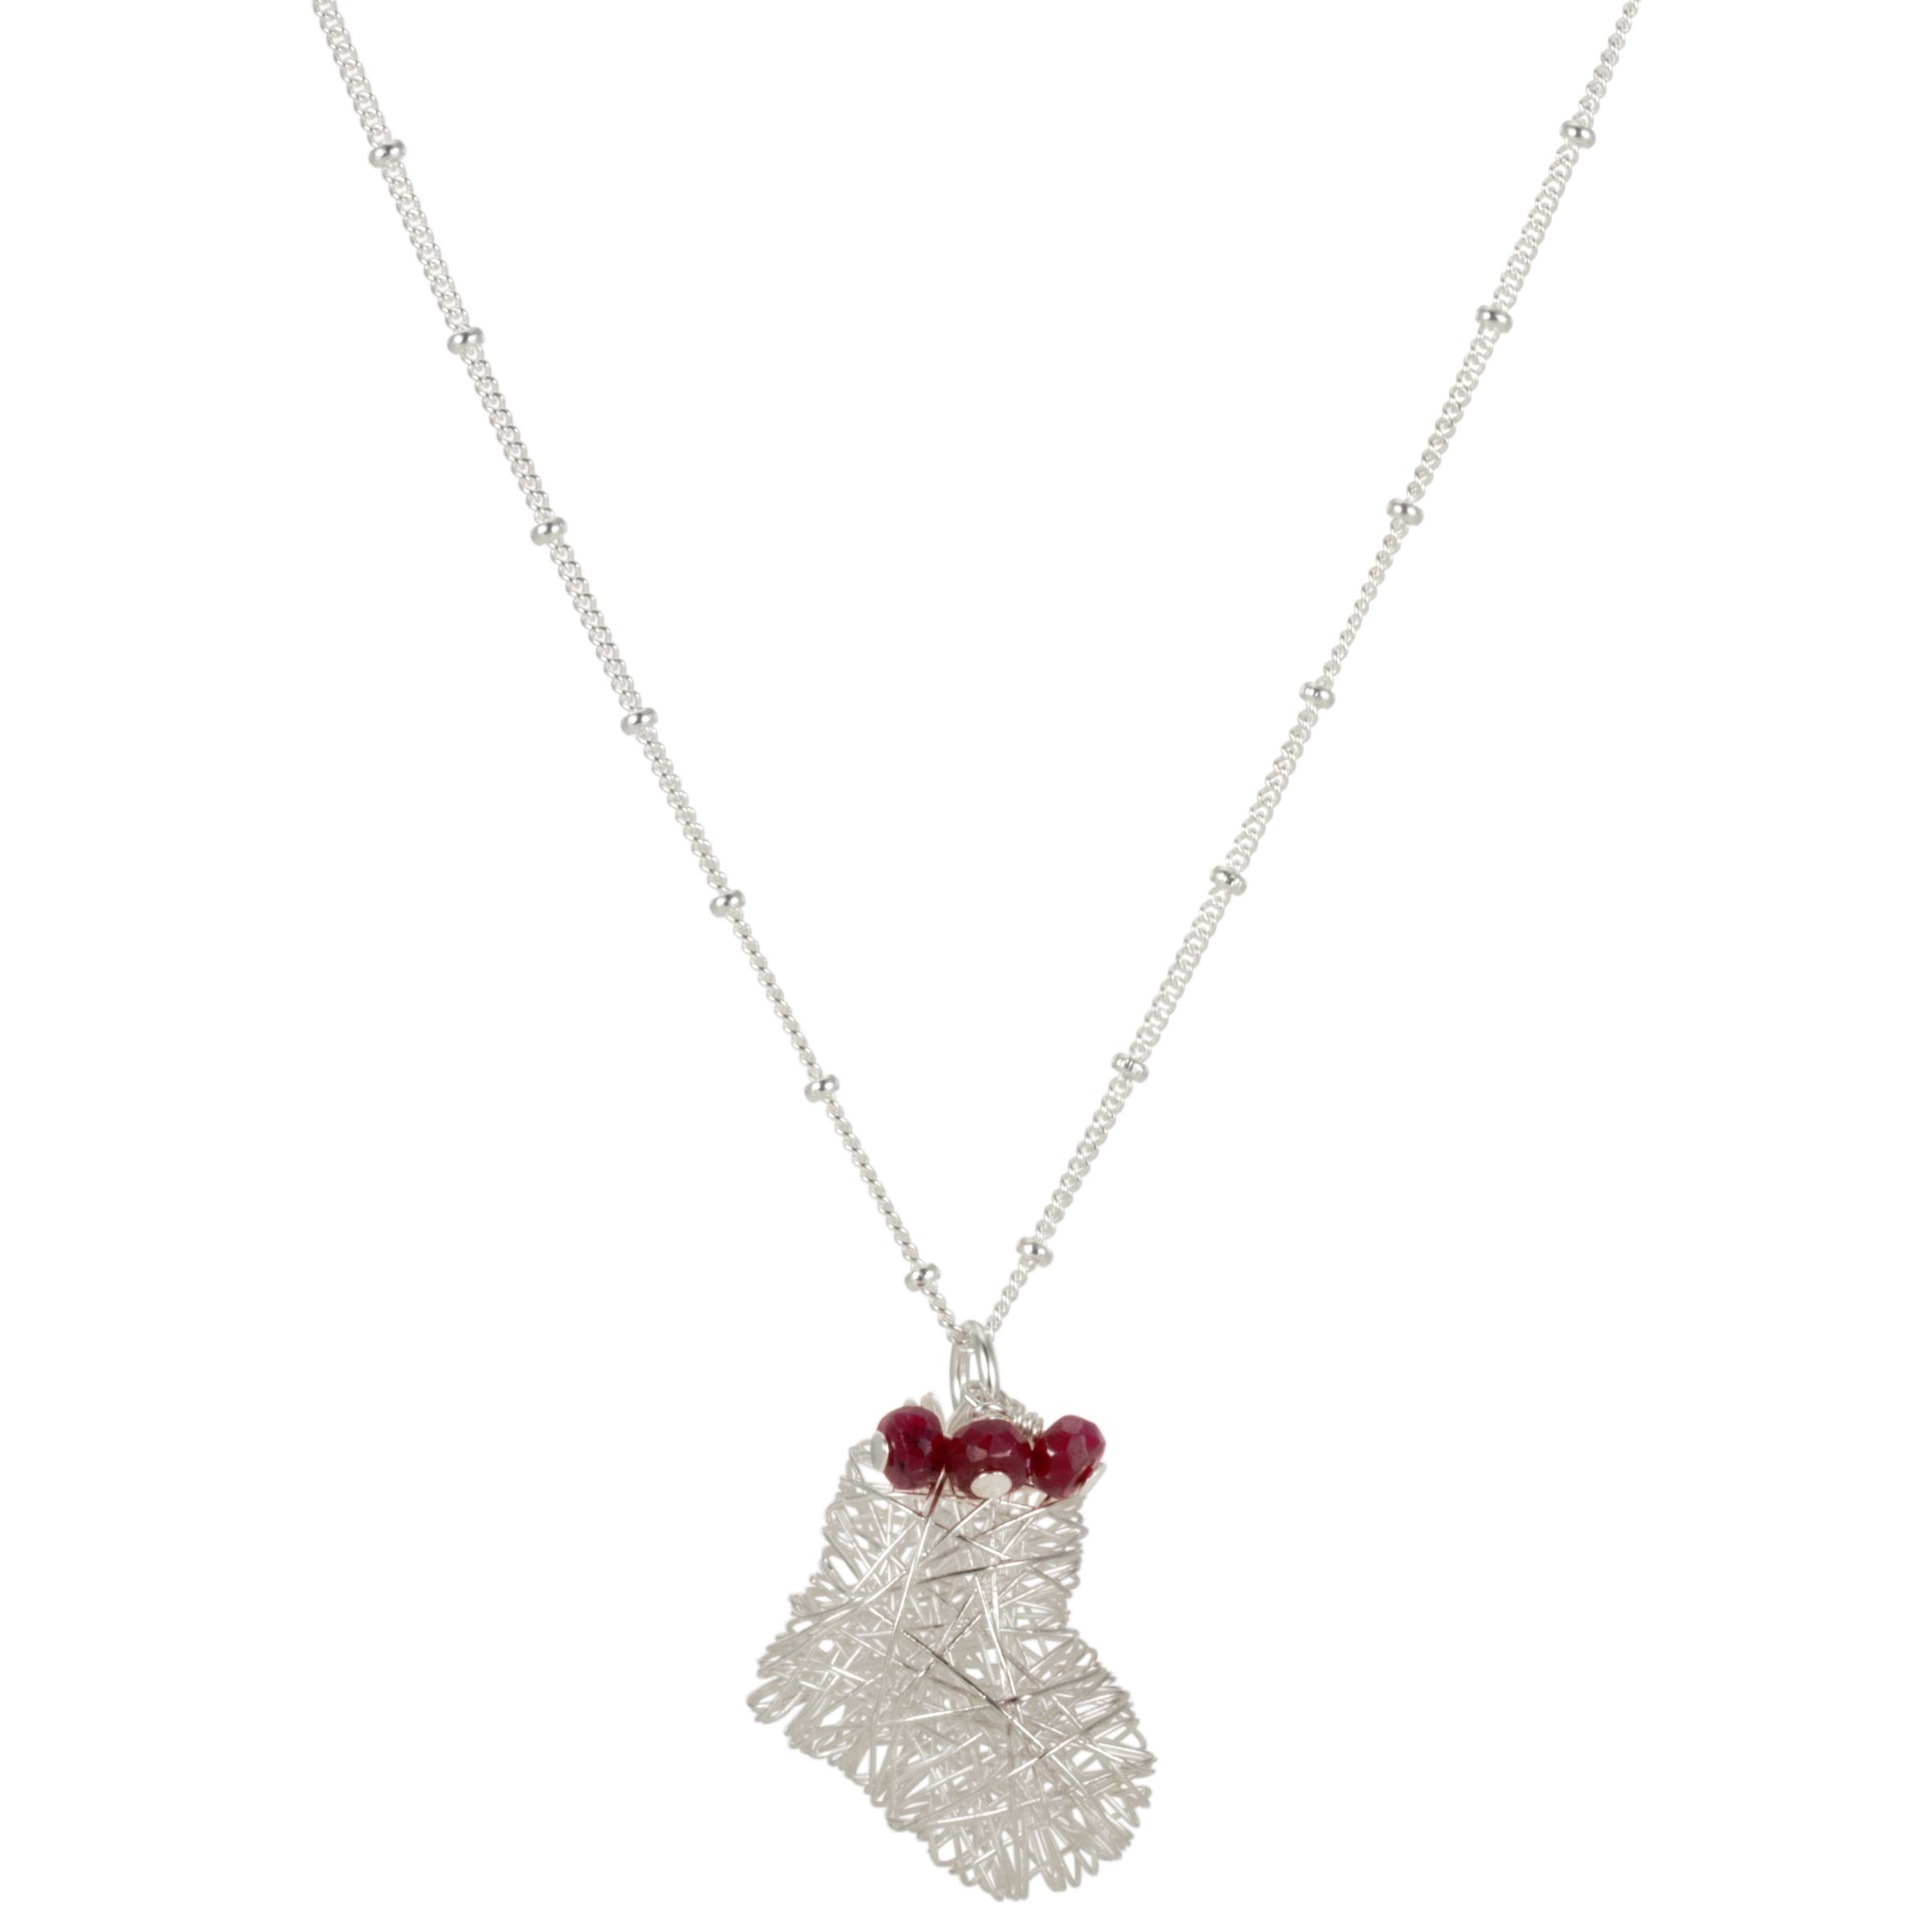 Martick Wire Heart and Ruby Rough Beads Pendant Necklace